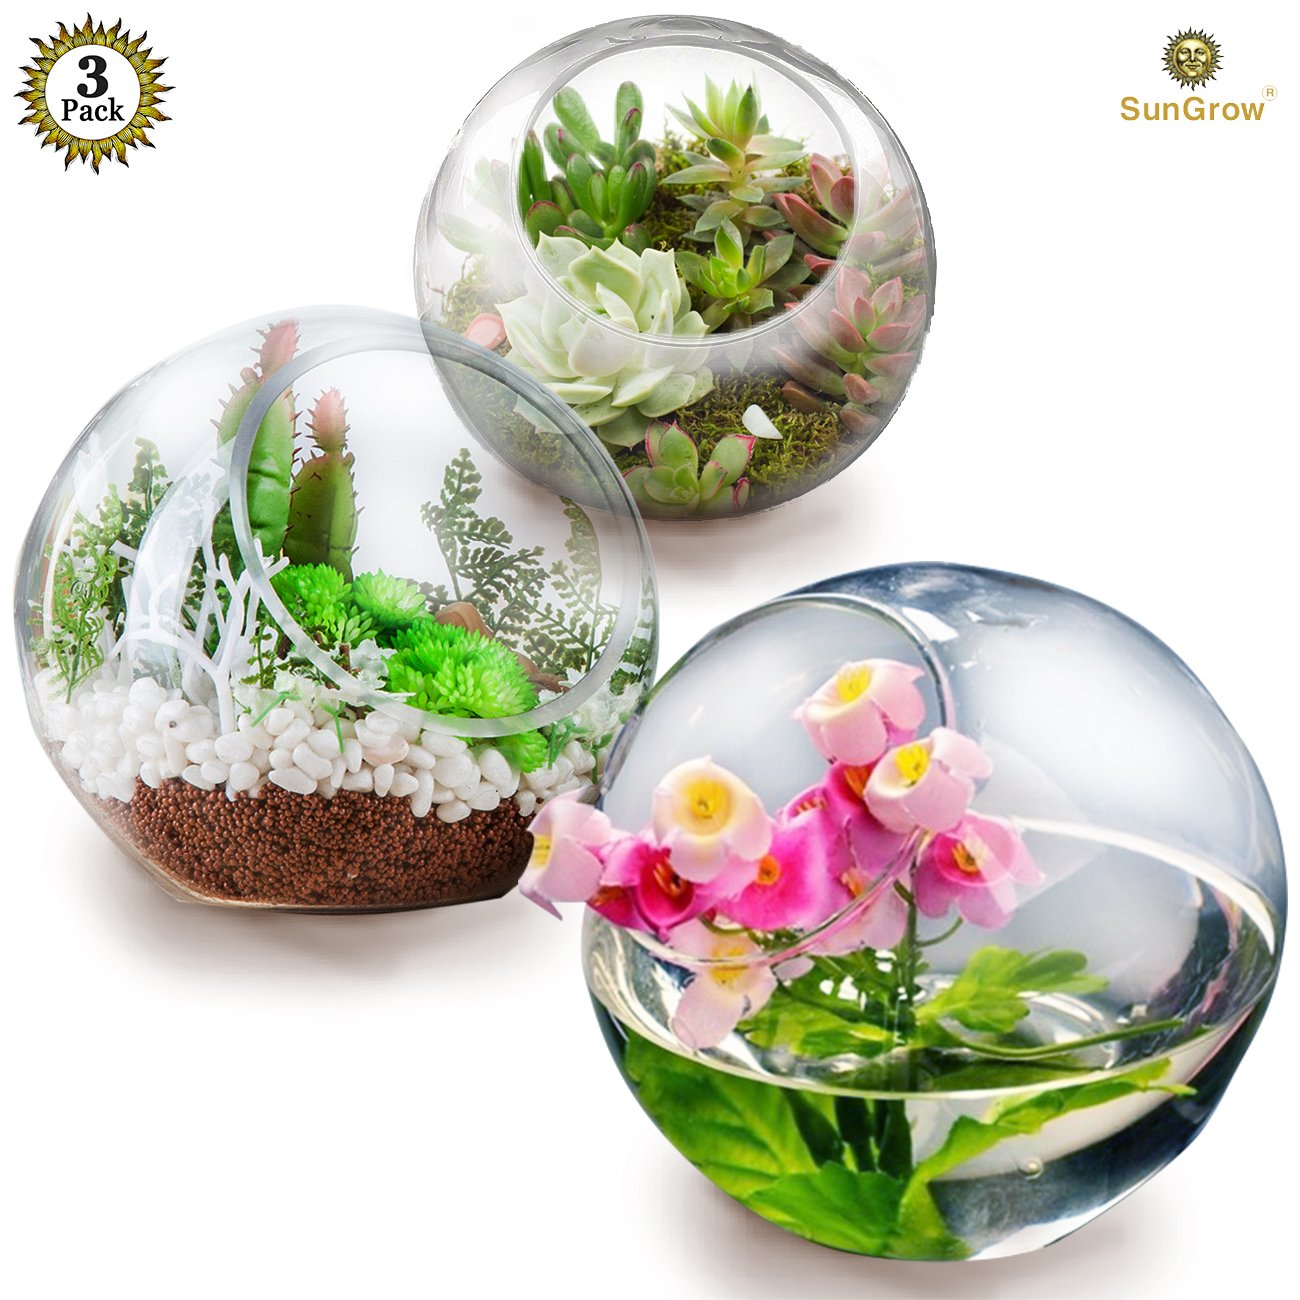 3 Tabletop Plant Containers - Creates Mini Glass Terrarium Garden - Ideal Spherical Vases for Ferns, Succulents, Air Plants, Cacti - Excellent Gift and DIY Projects - Can Withstand All Seasons by SunGrow